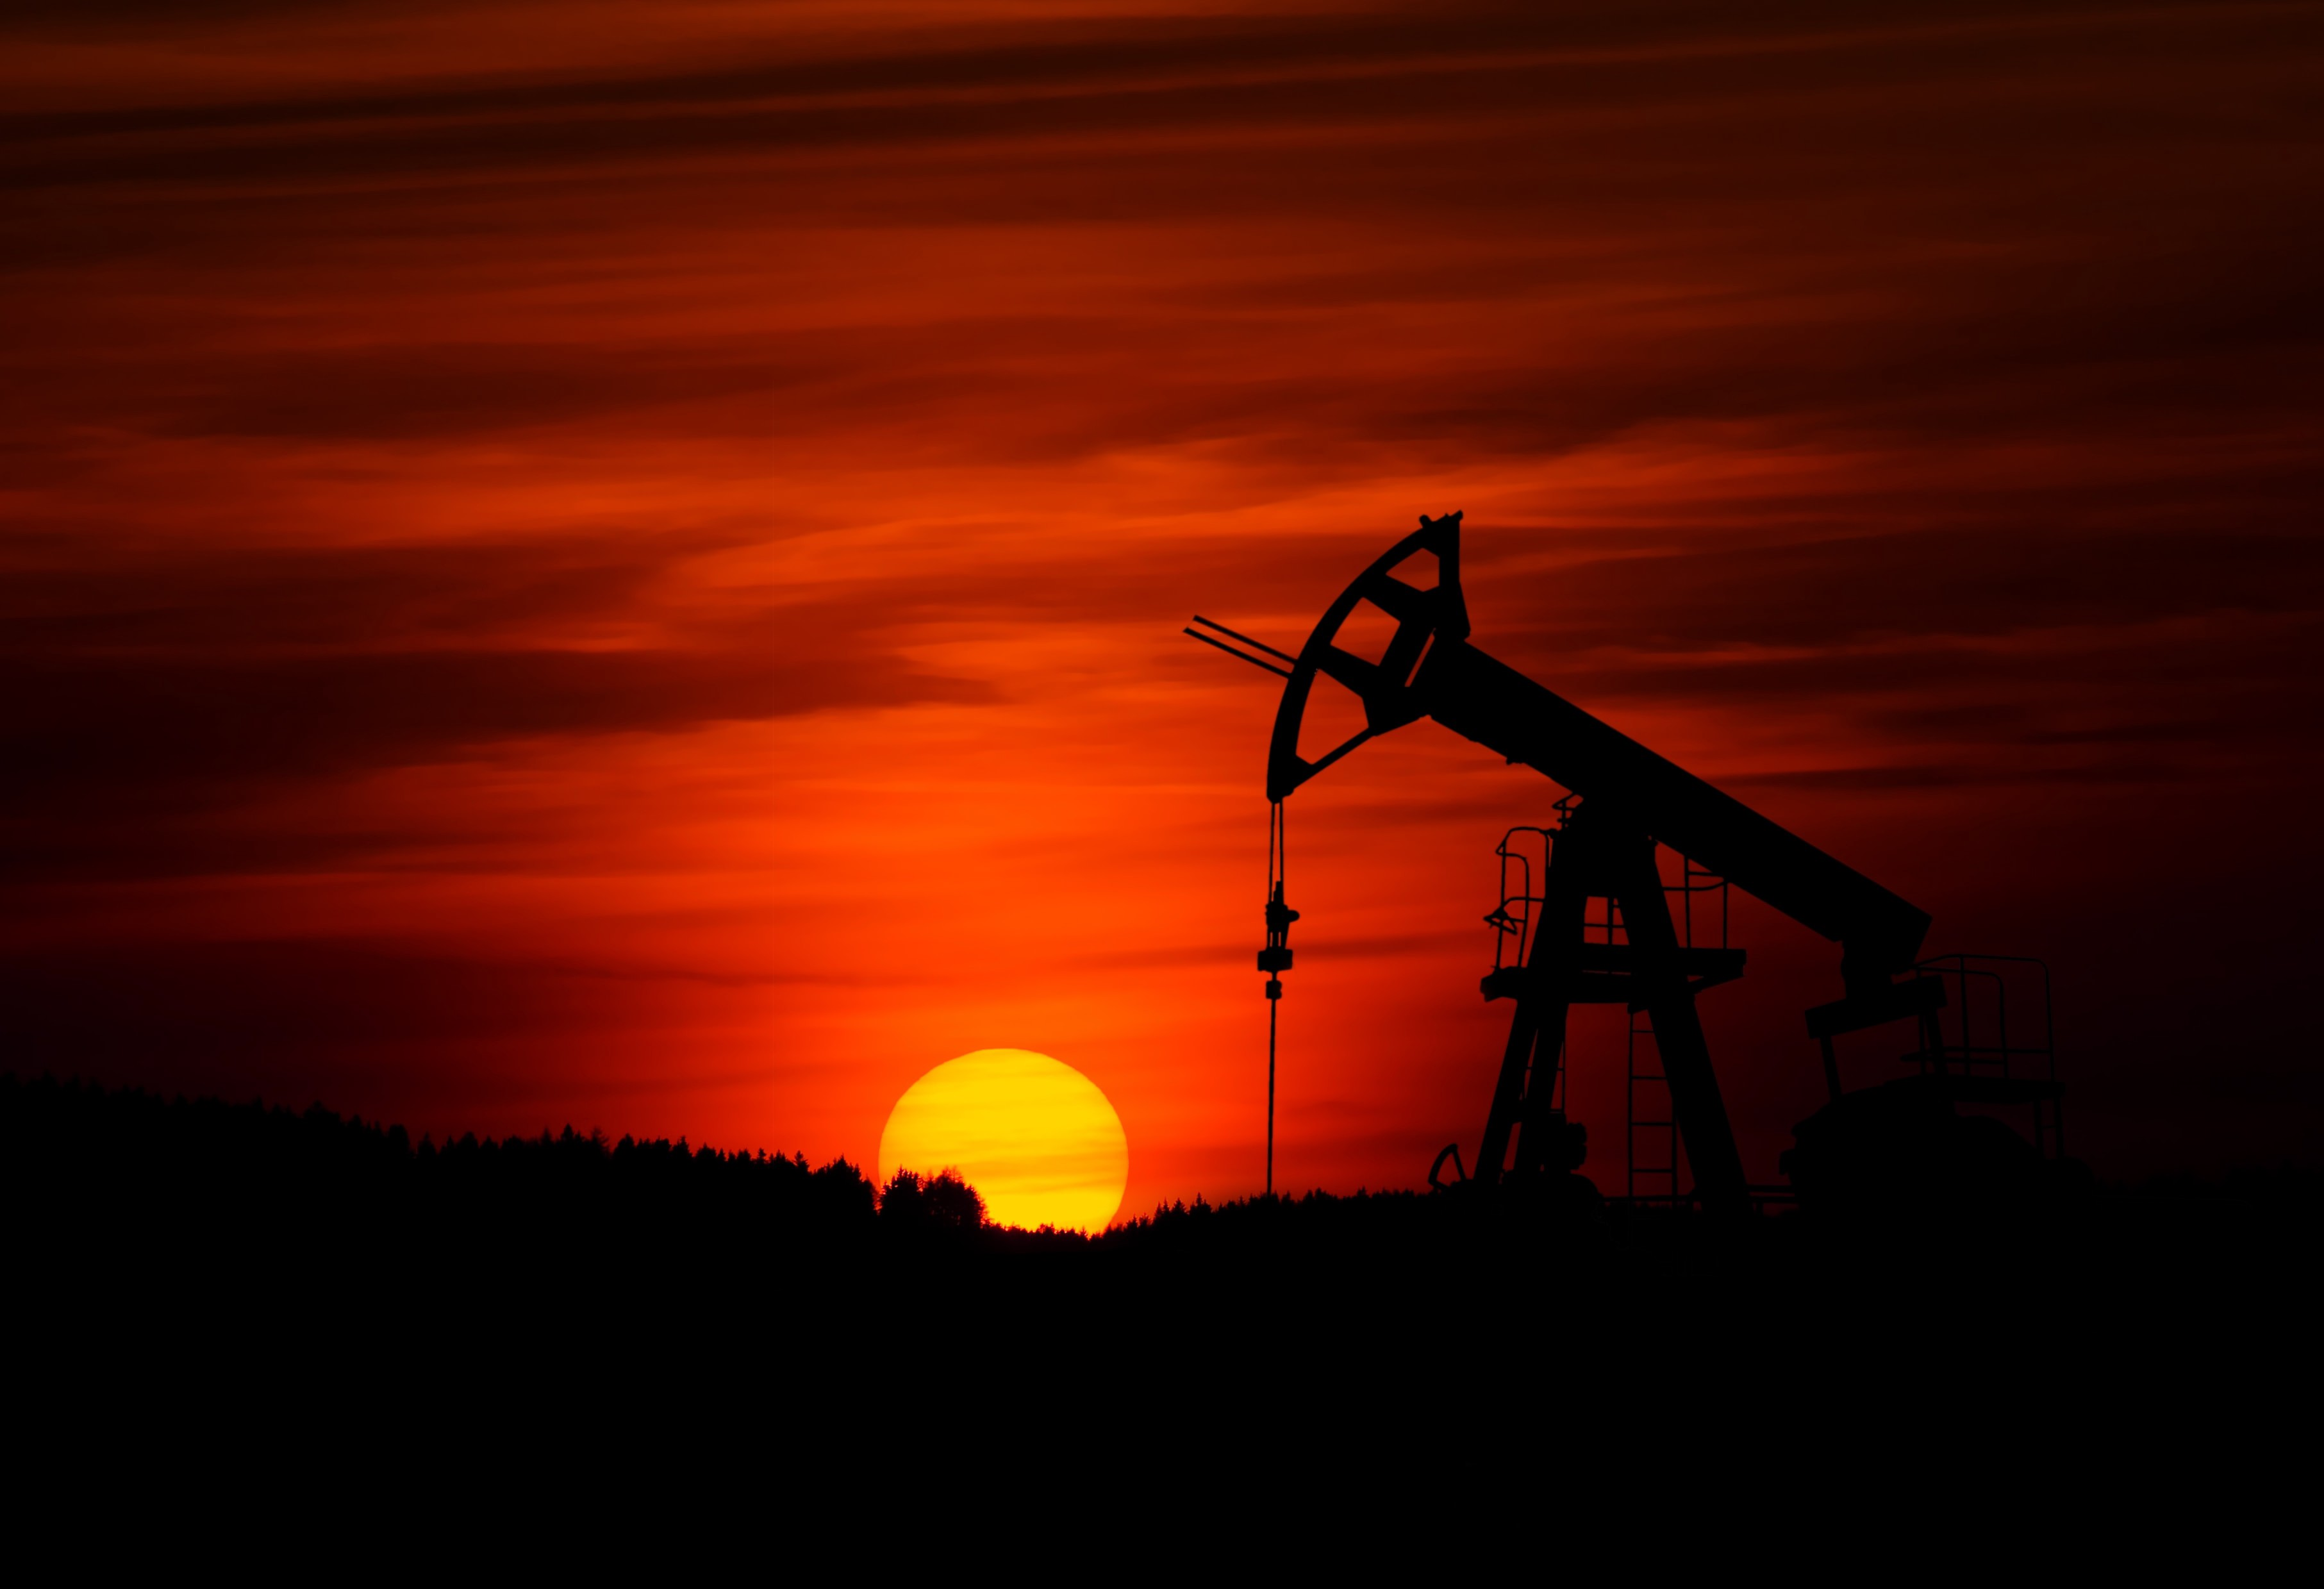 Oil field at sunset. An dark oil machine sits in the dark foreground against a red, orange sky. The sun is yellow.